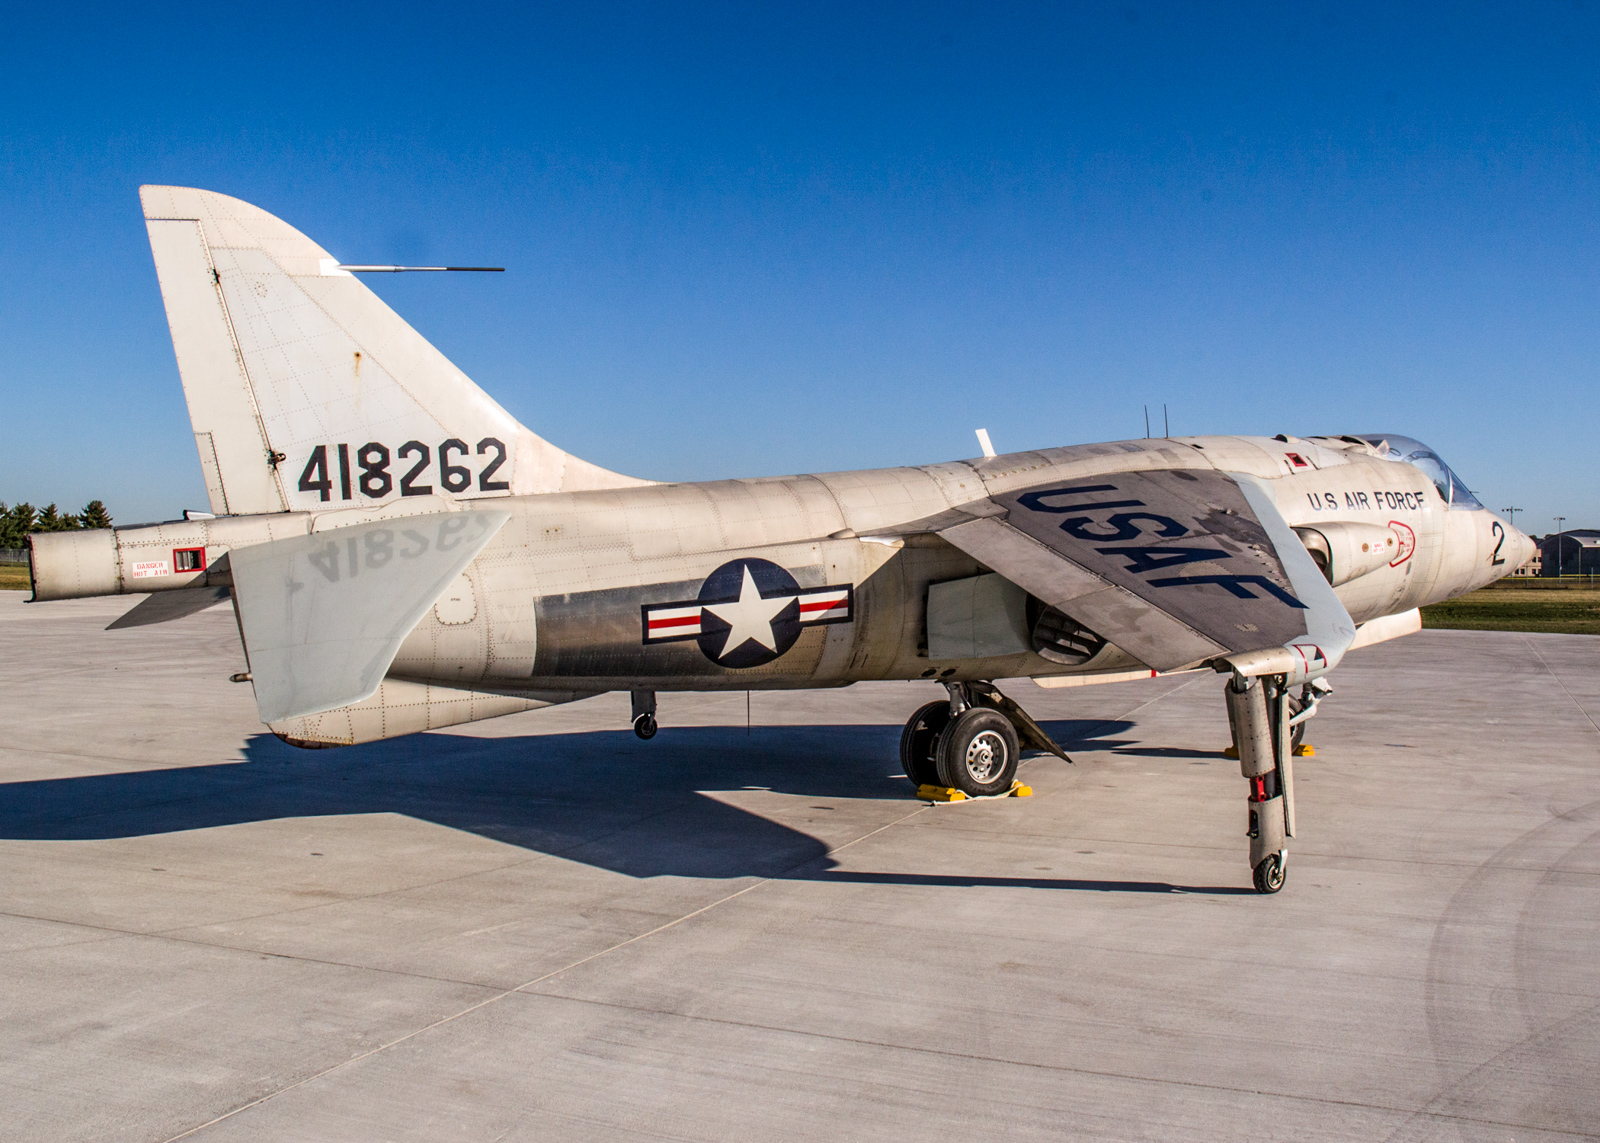 The Hawker Siddeley XV-6A Kestrel at the National Museum of the U.S. Air Force on Oct. 8, 2015. (U.S. Air Force photo by Ken LaRock)